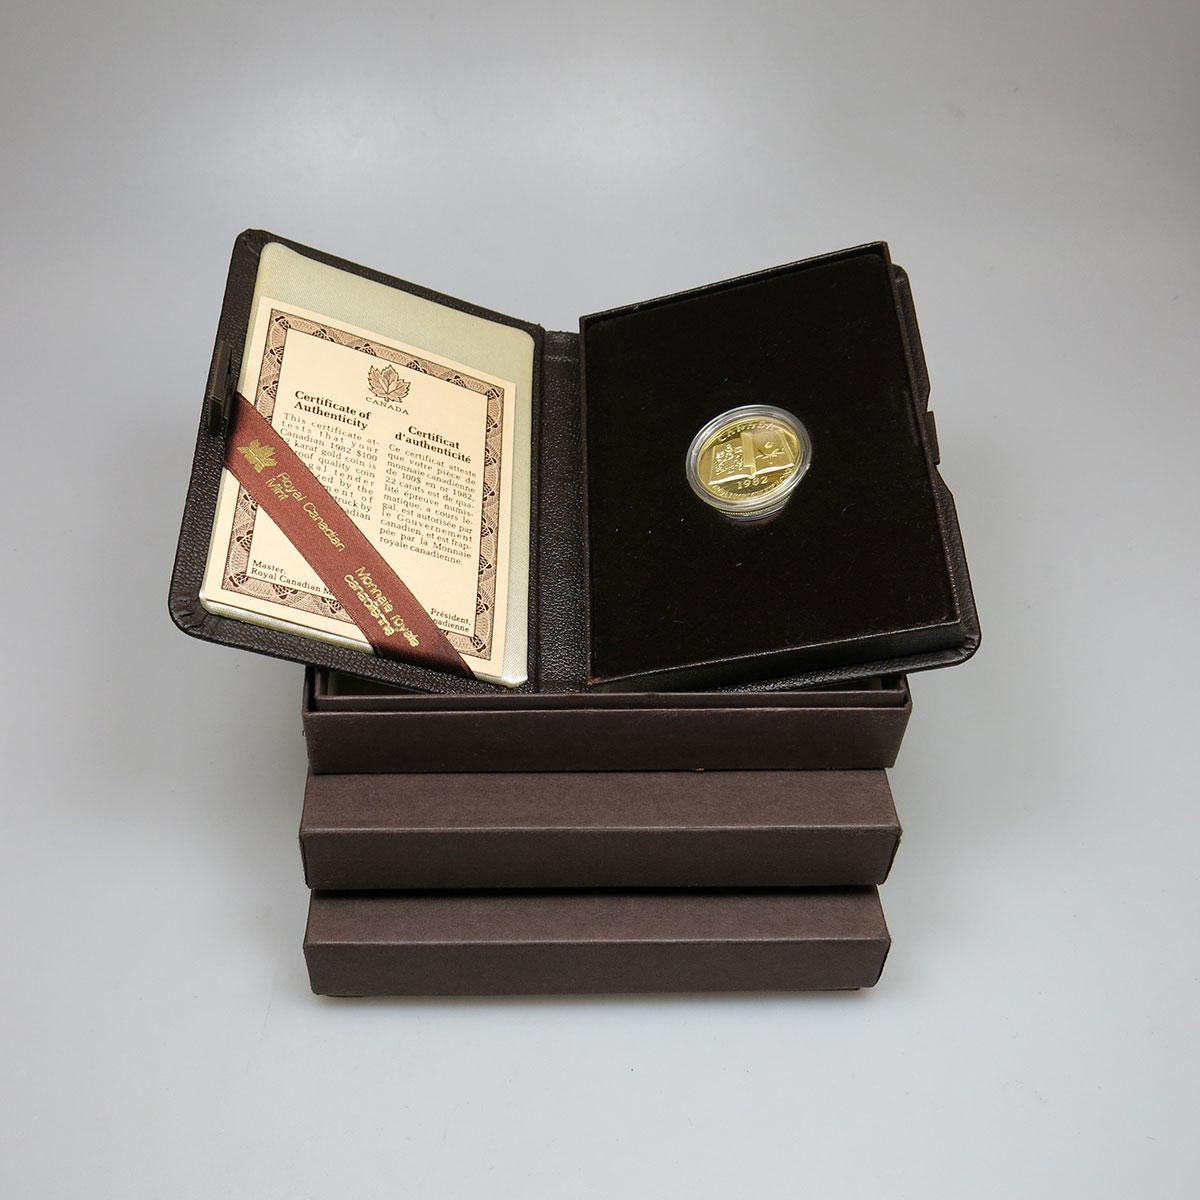 Three 1982 Canadian $100 Gold Coins